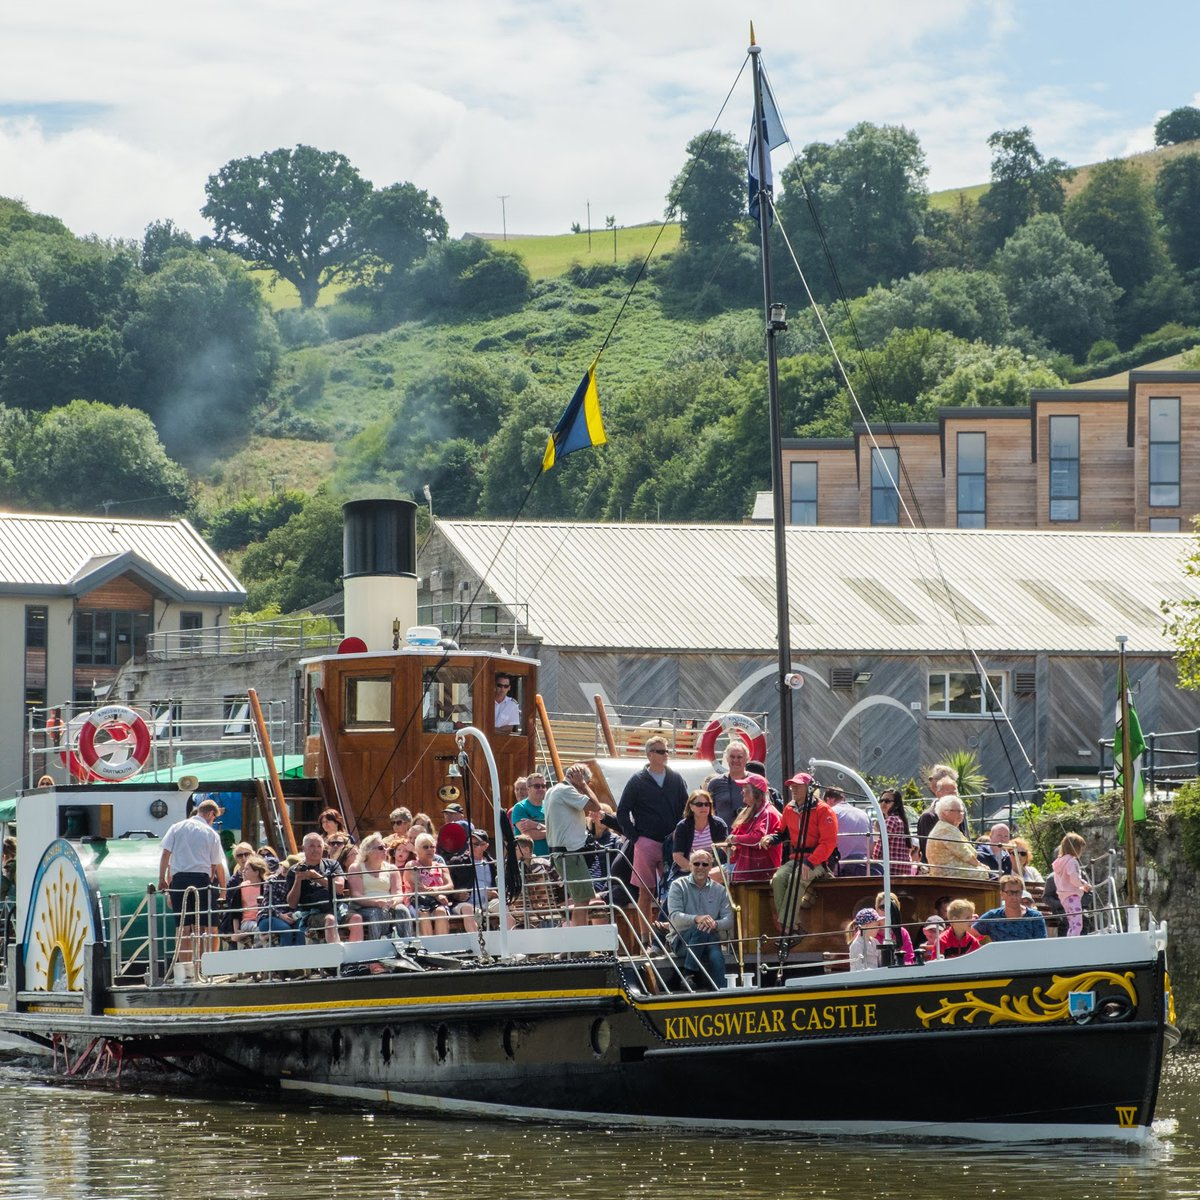 Kingswear Castle is the last remaining coal-fired paddle steamer in the UK. Will you be looking to take a trip with Kingswear Castle when you can? #dartmouthsteamrailway #kingswearcastle